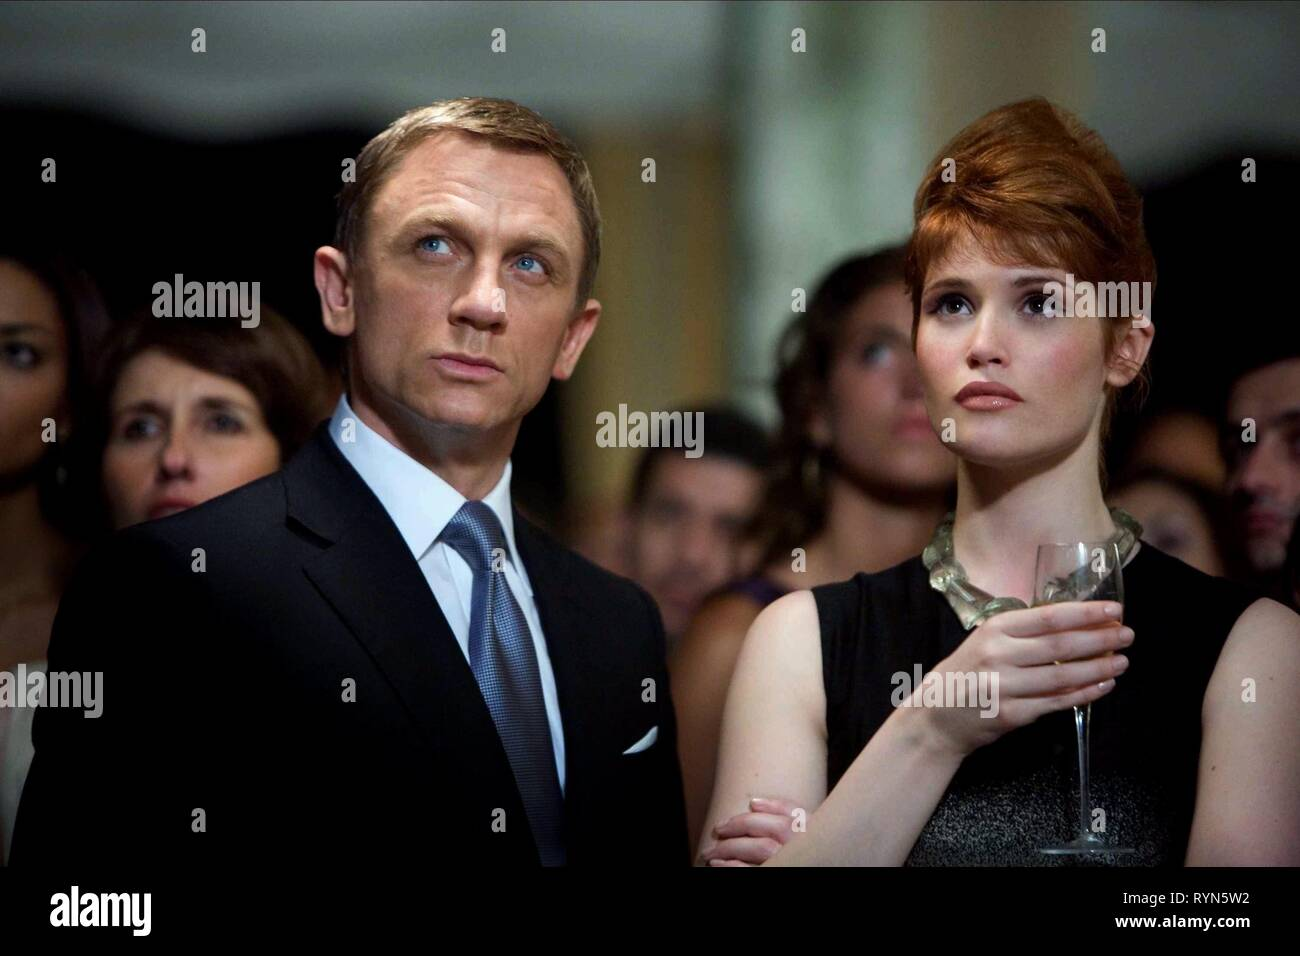 CRAIG,ARTERTON,  QUANTUM OF SOLACE, 2008 - Stock Image